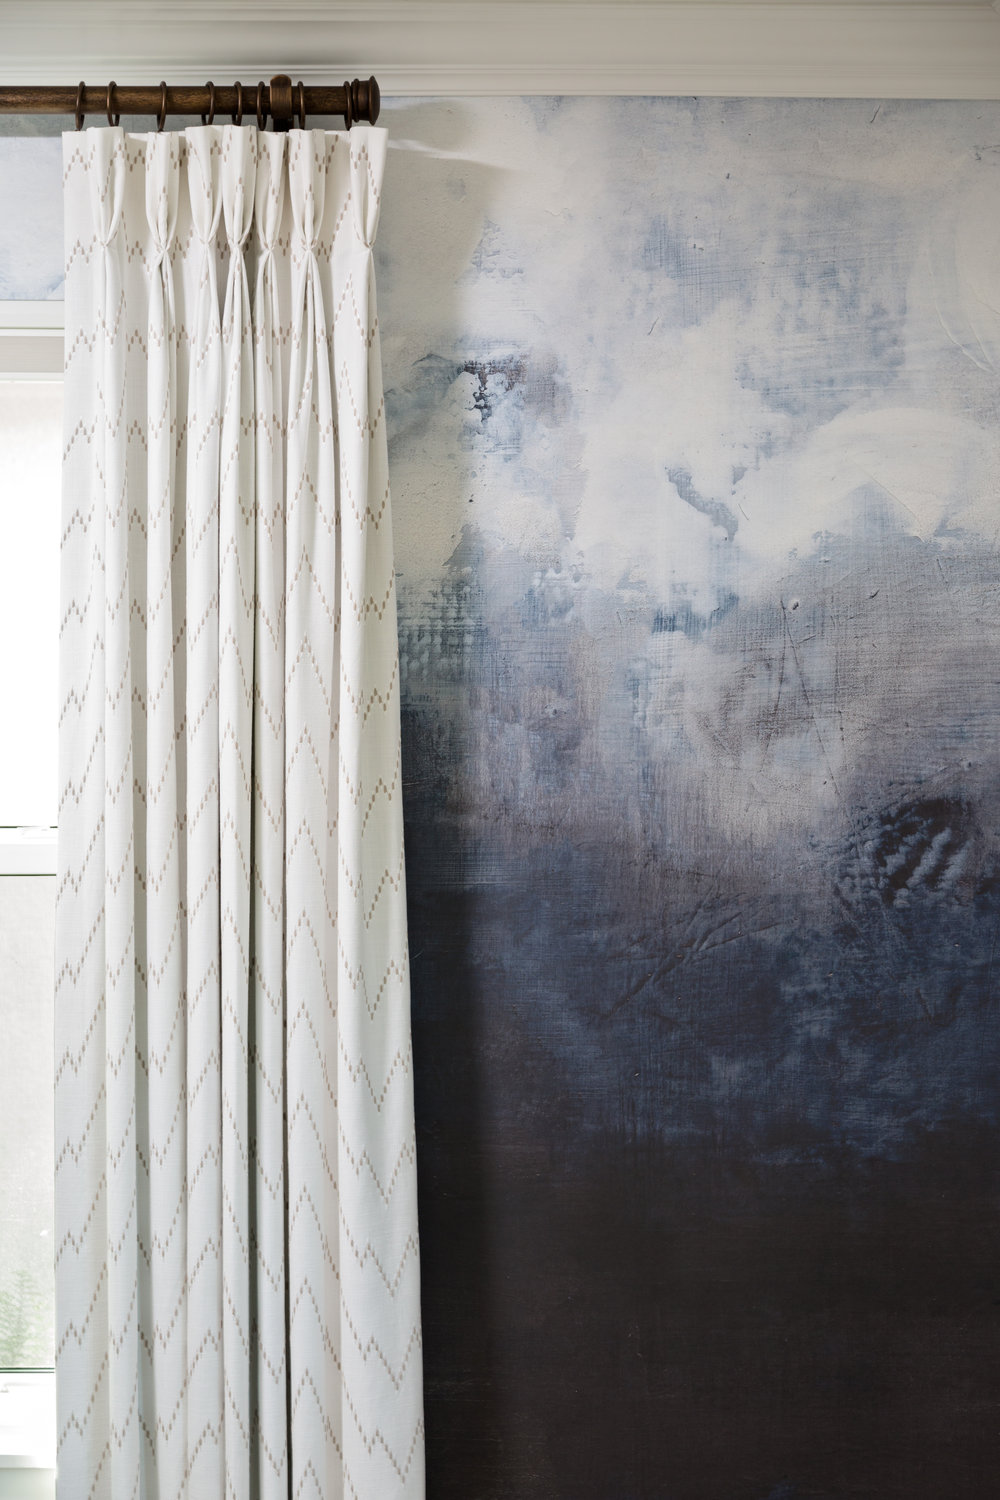 A Moody Wallpaper Mural to Set the Tone in this Master Bedroom by Lisa Gilmore Design